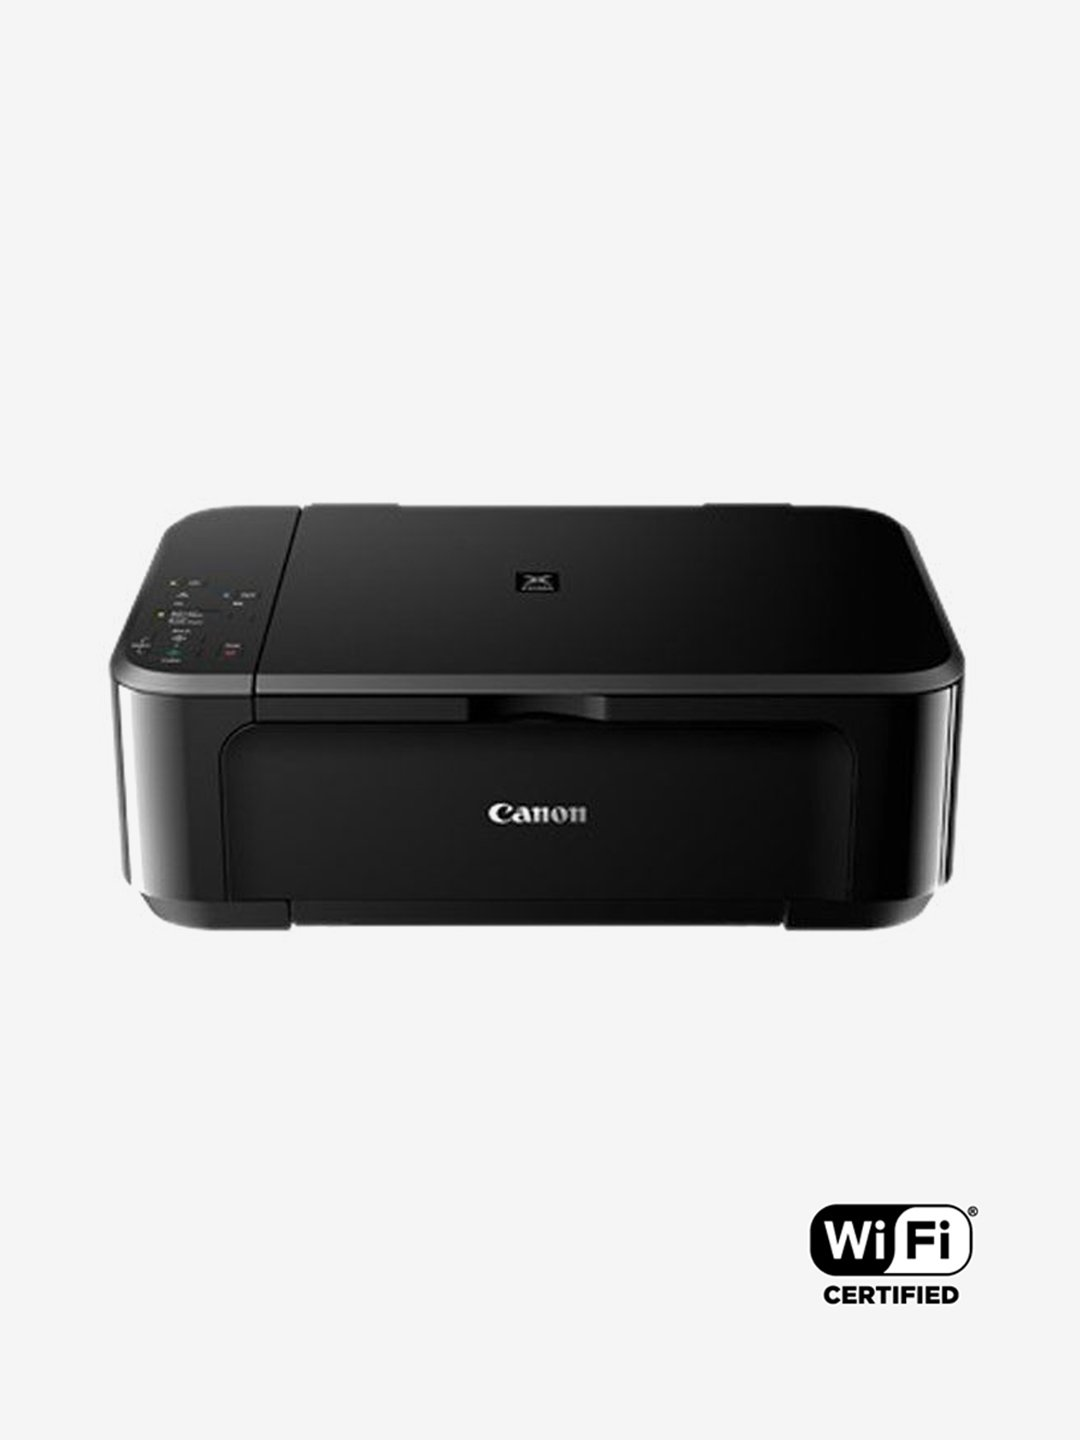 Canon Pixma MG3670 Multi-function Wireless AIO Inkjet Printer (Black)